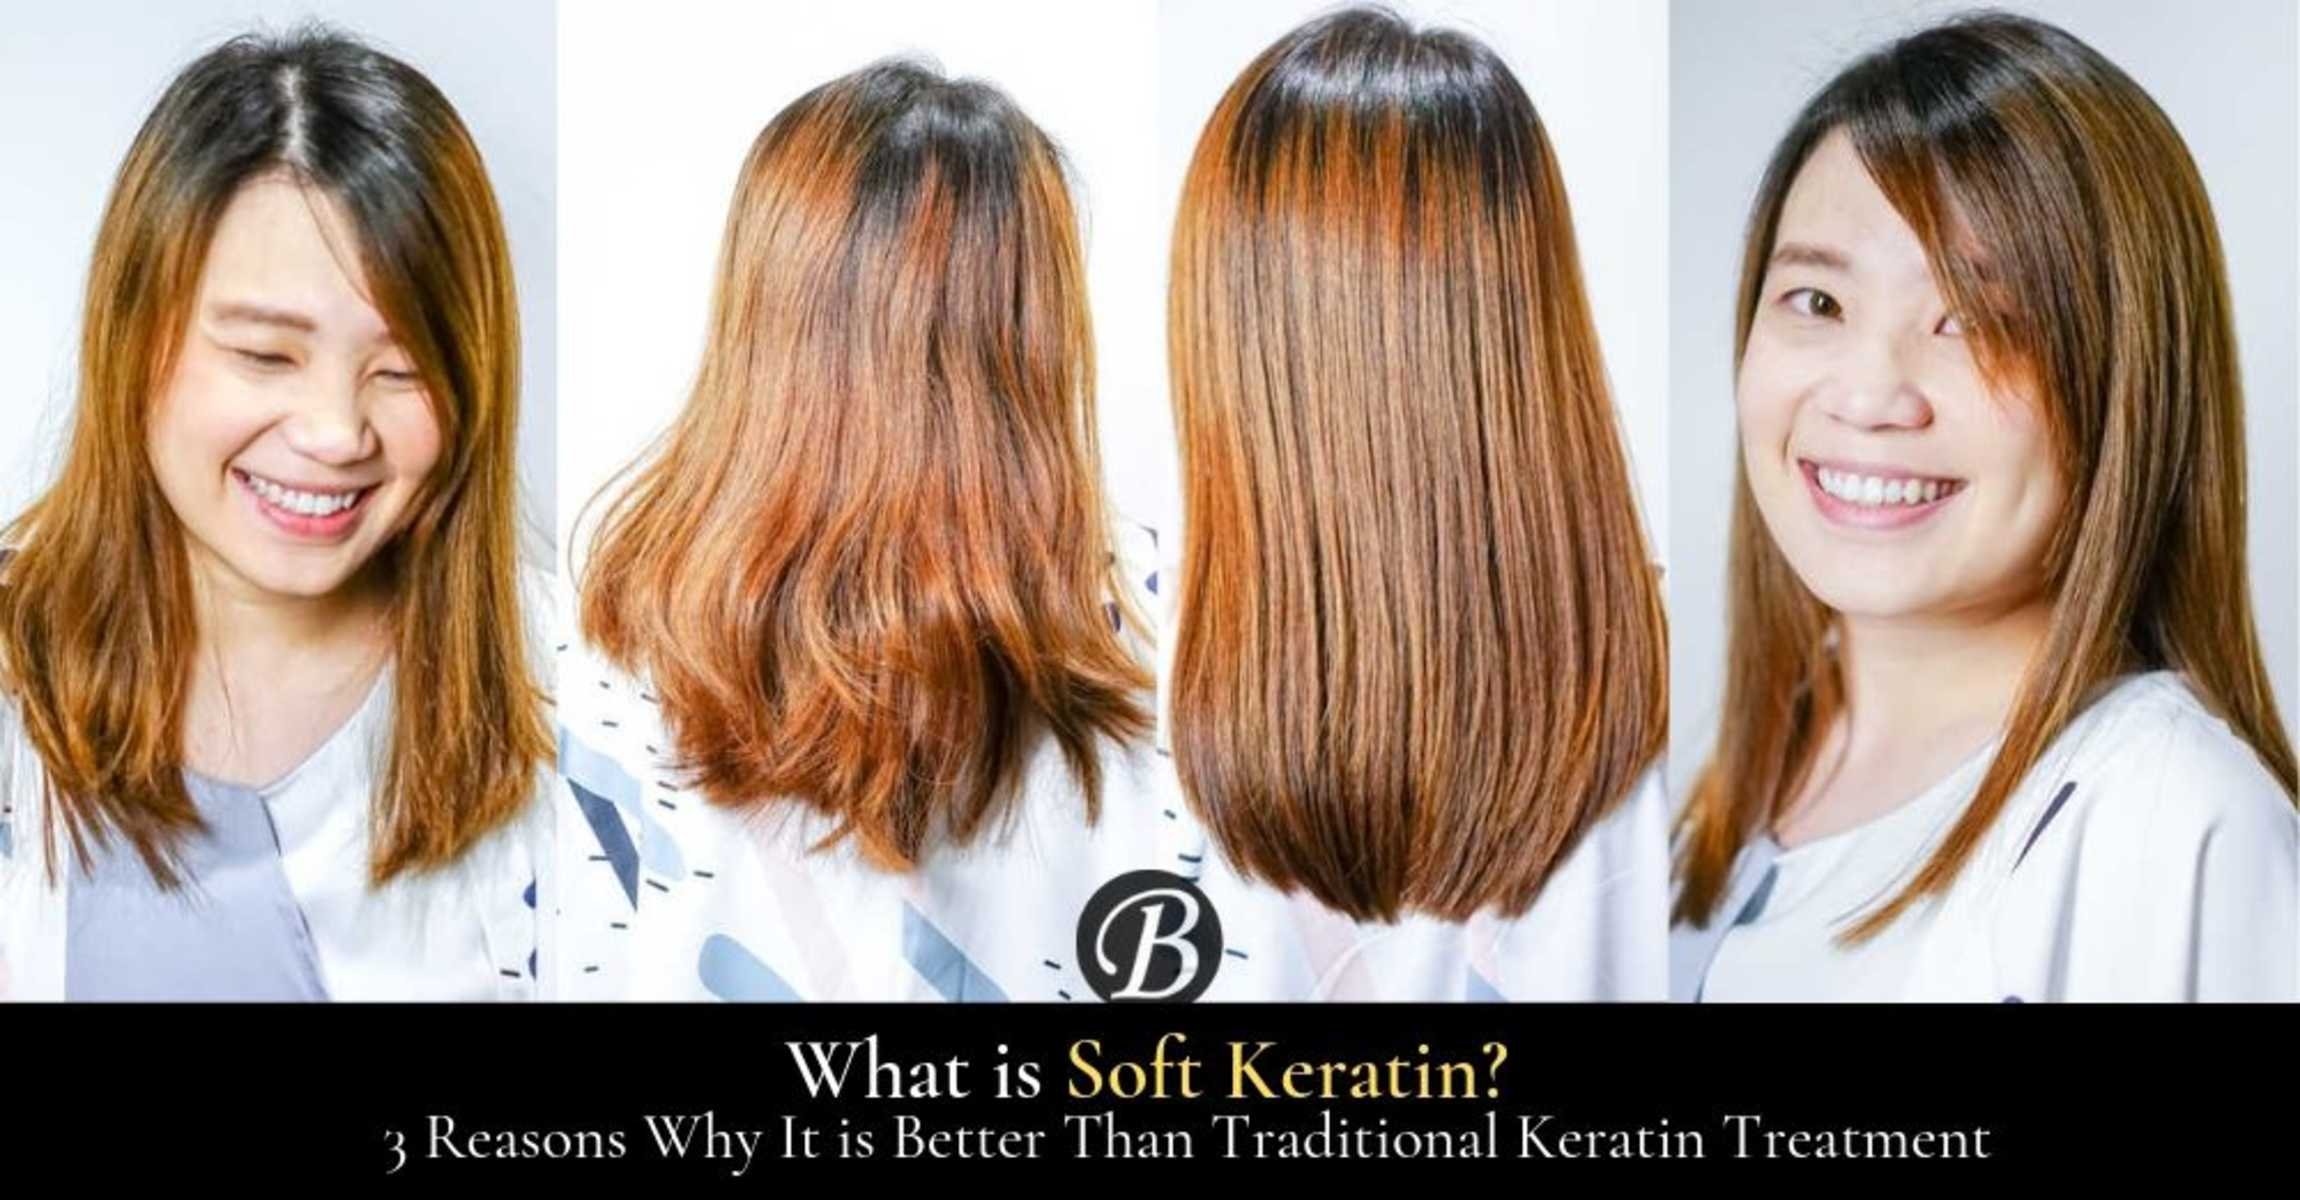 What is Soft Keratin Treatment and 3 Reasons Why It is Better Than Traditional Keratin Treatment